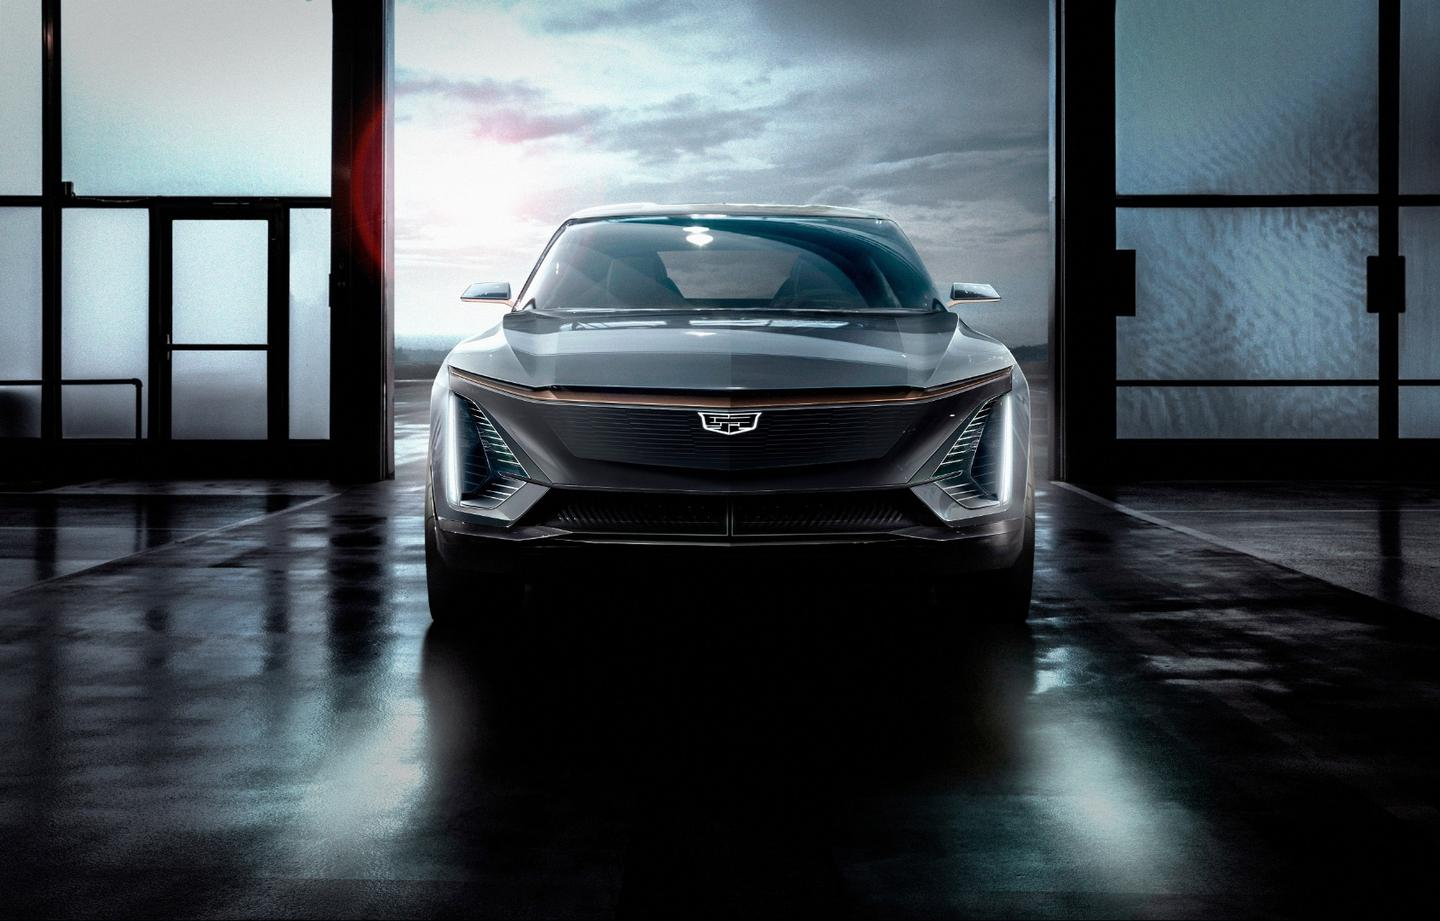 There is currentlylittle technical detail available on the car, Cadillac's first fully electric EV